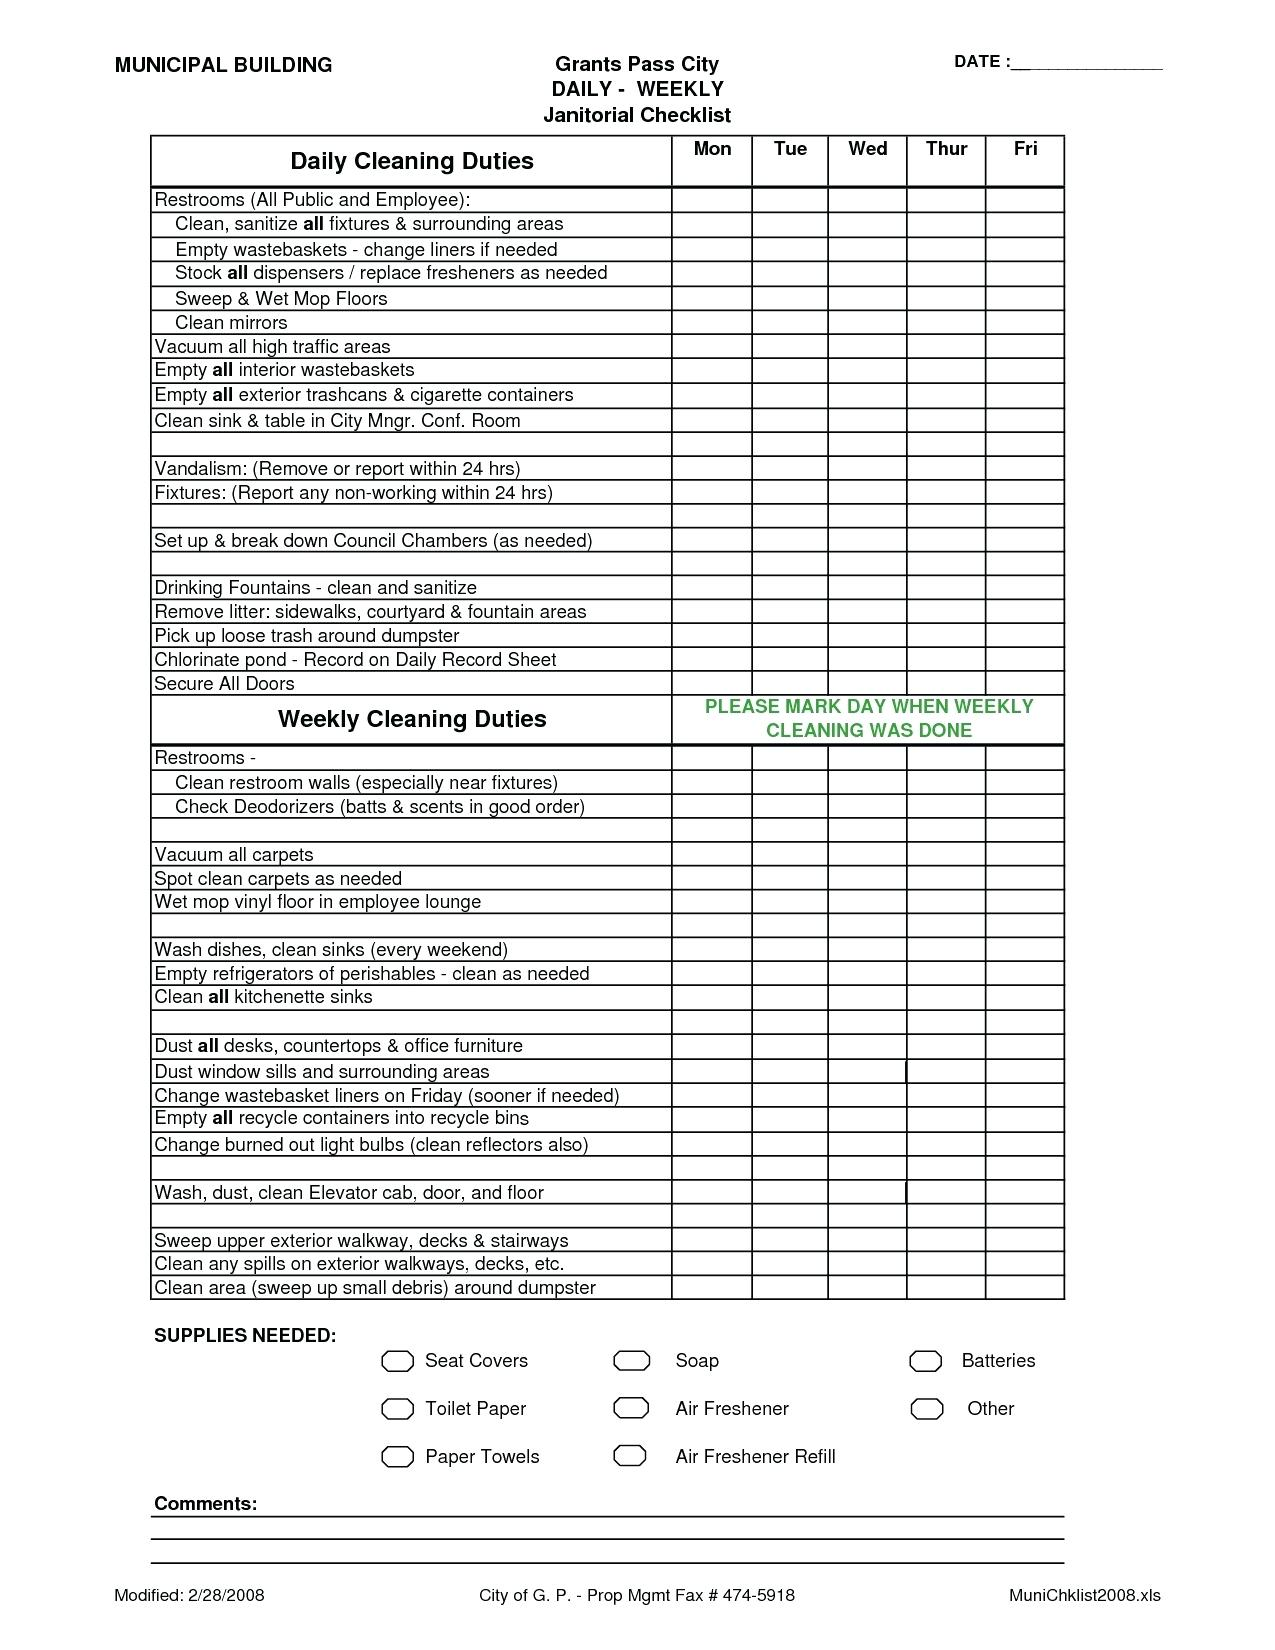 Daycare Cleaning Checklist Templates